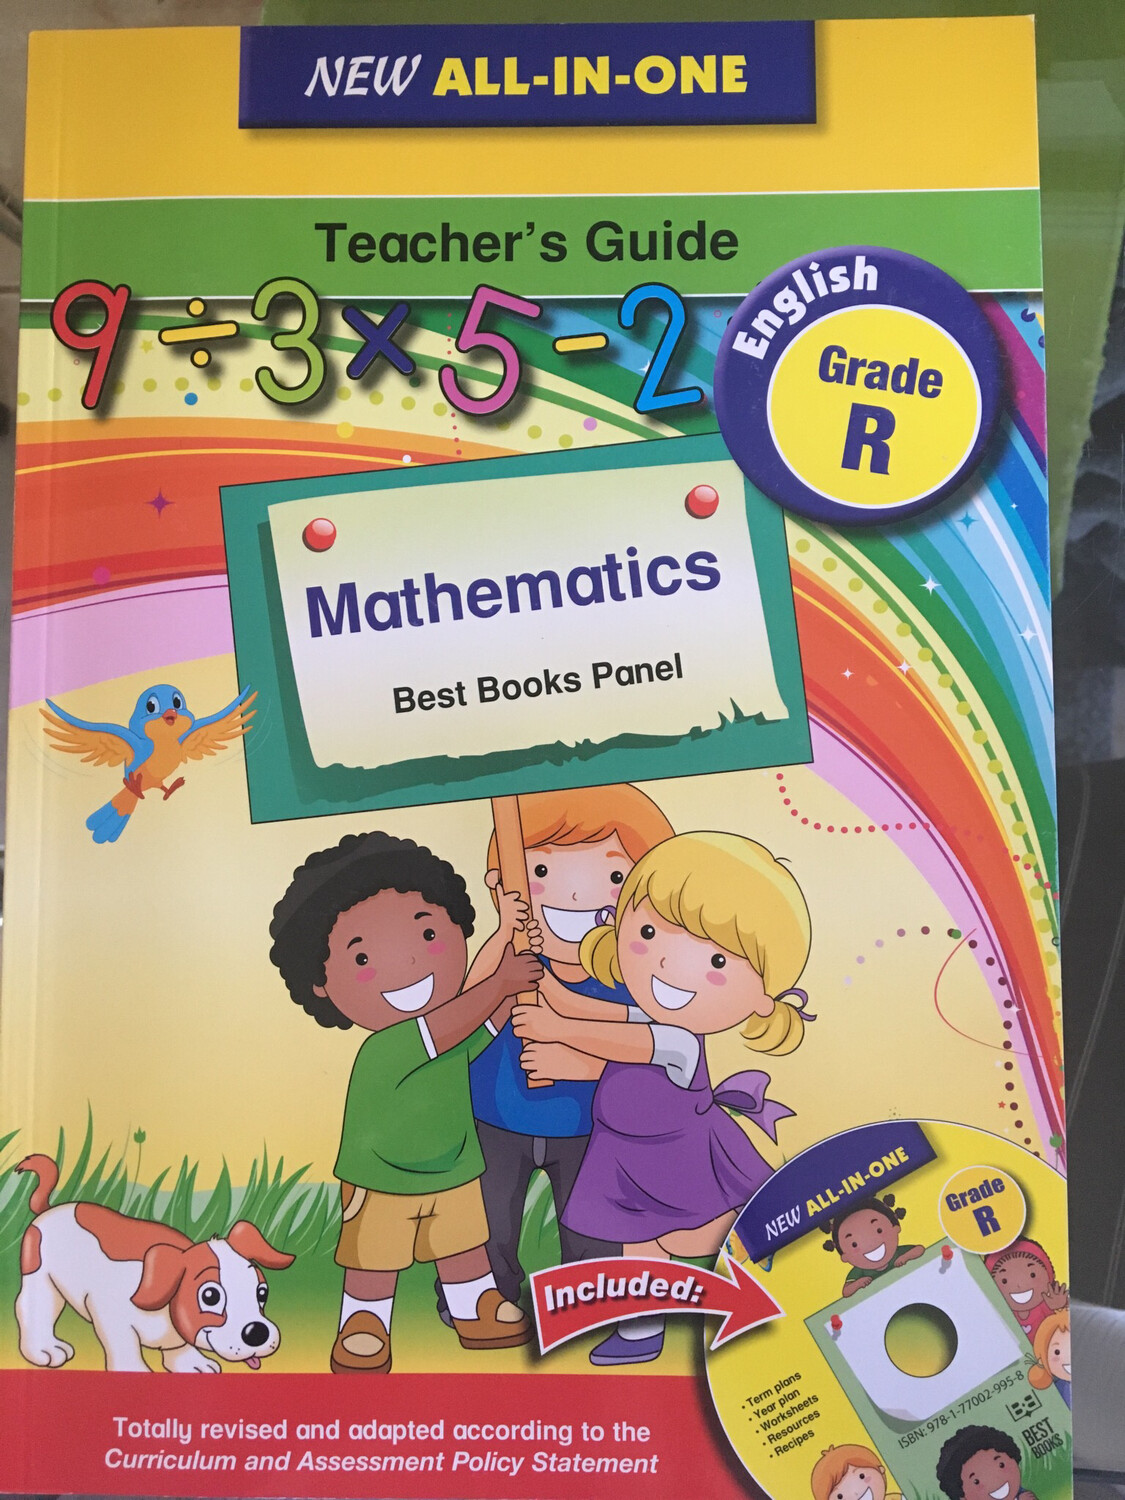 Grade R New All-in-one Mathematics Teacher's Guide